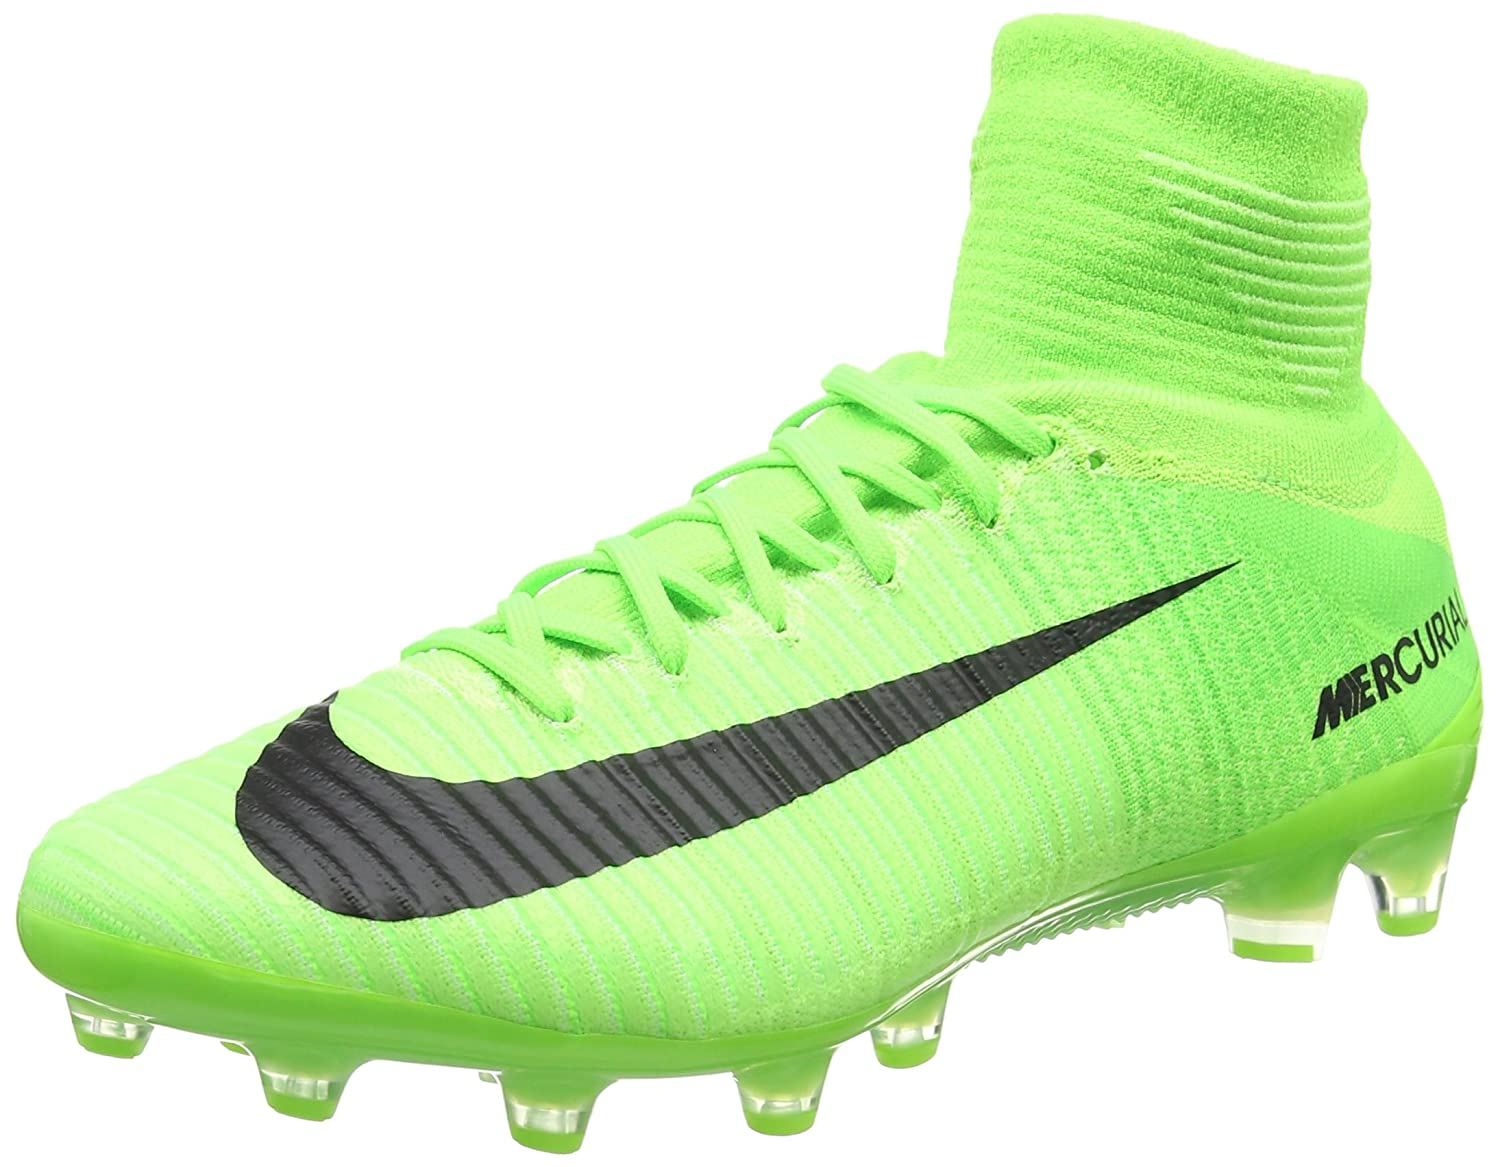 new style 8e458 b206a Amazon.com   NIKE Mercurial Superfly V AG-Pro Artificial-Grass Soccer  831955 305 Sz 11   Soccer